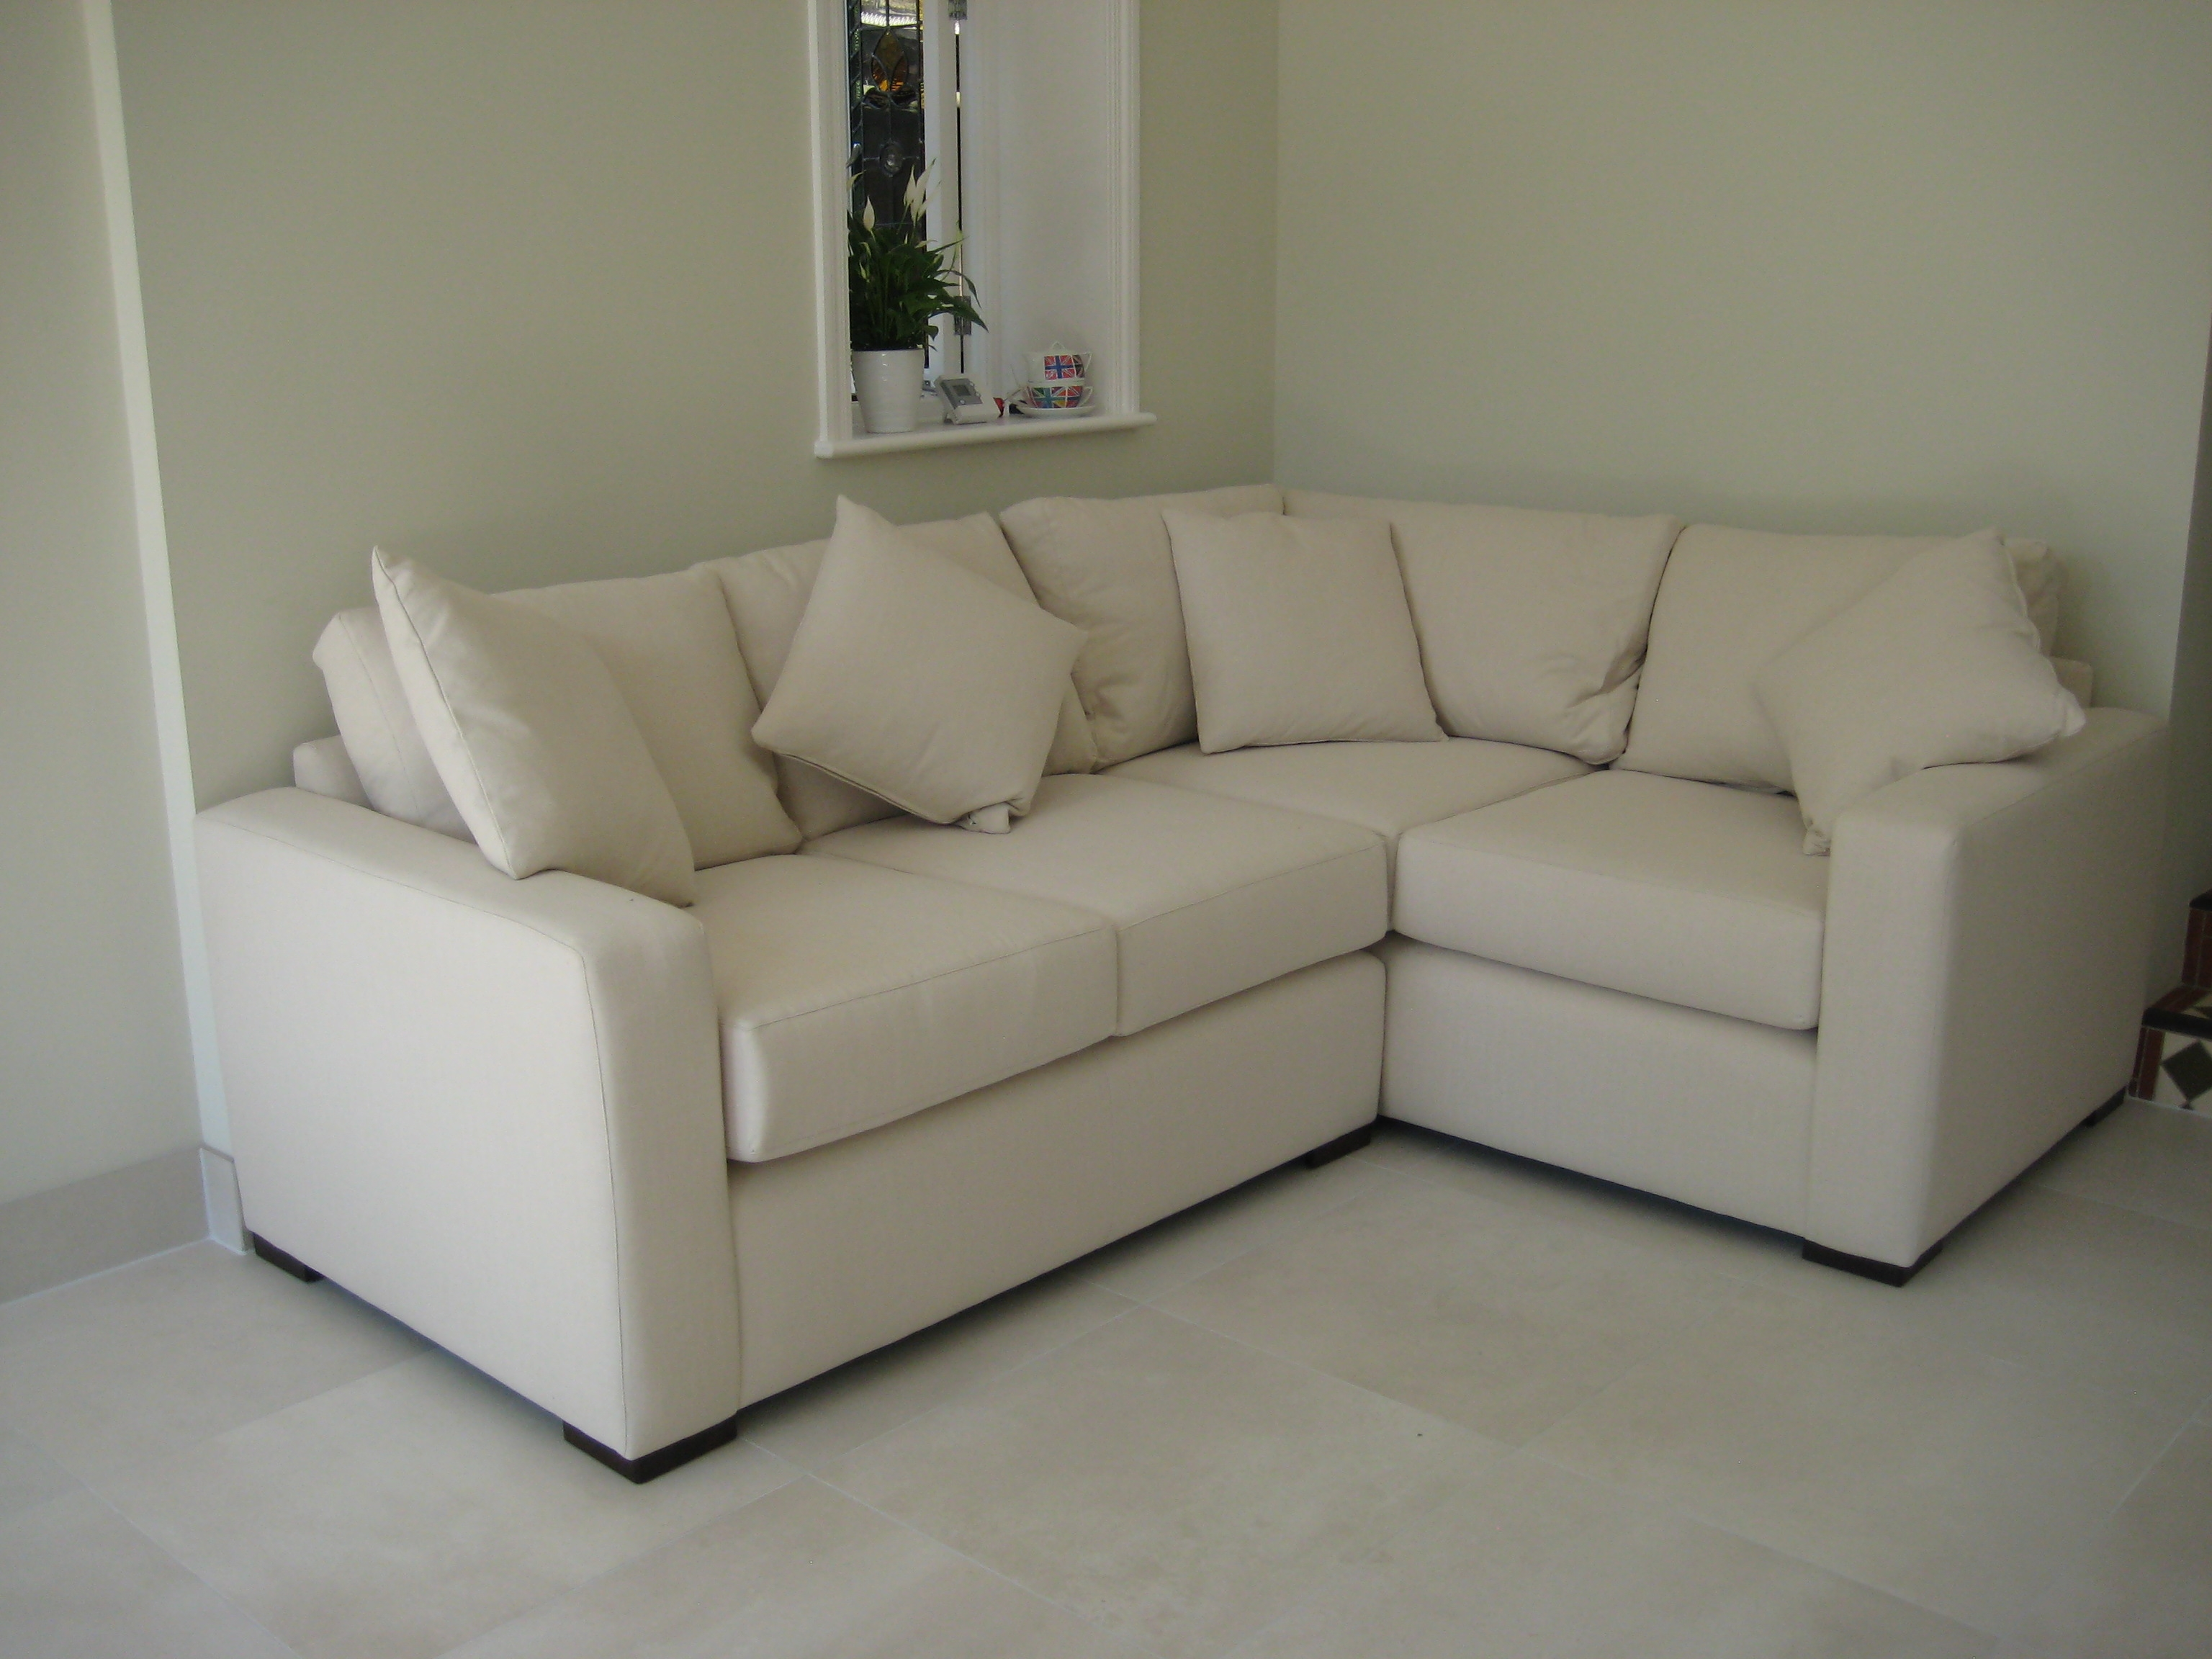 Lovely Example Of A Fully Bespoke Corner Sofa Properly Measured With Bespoke Corner Sofa Beds (Image 13 of 15)